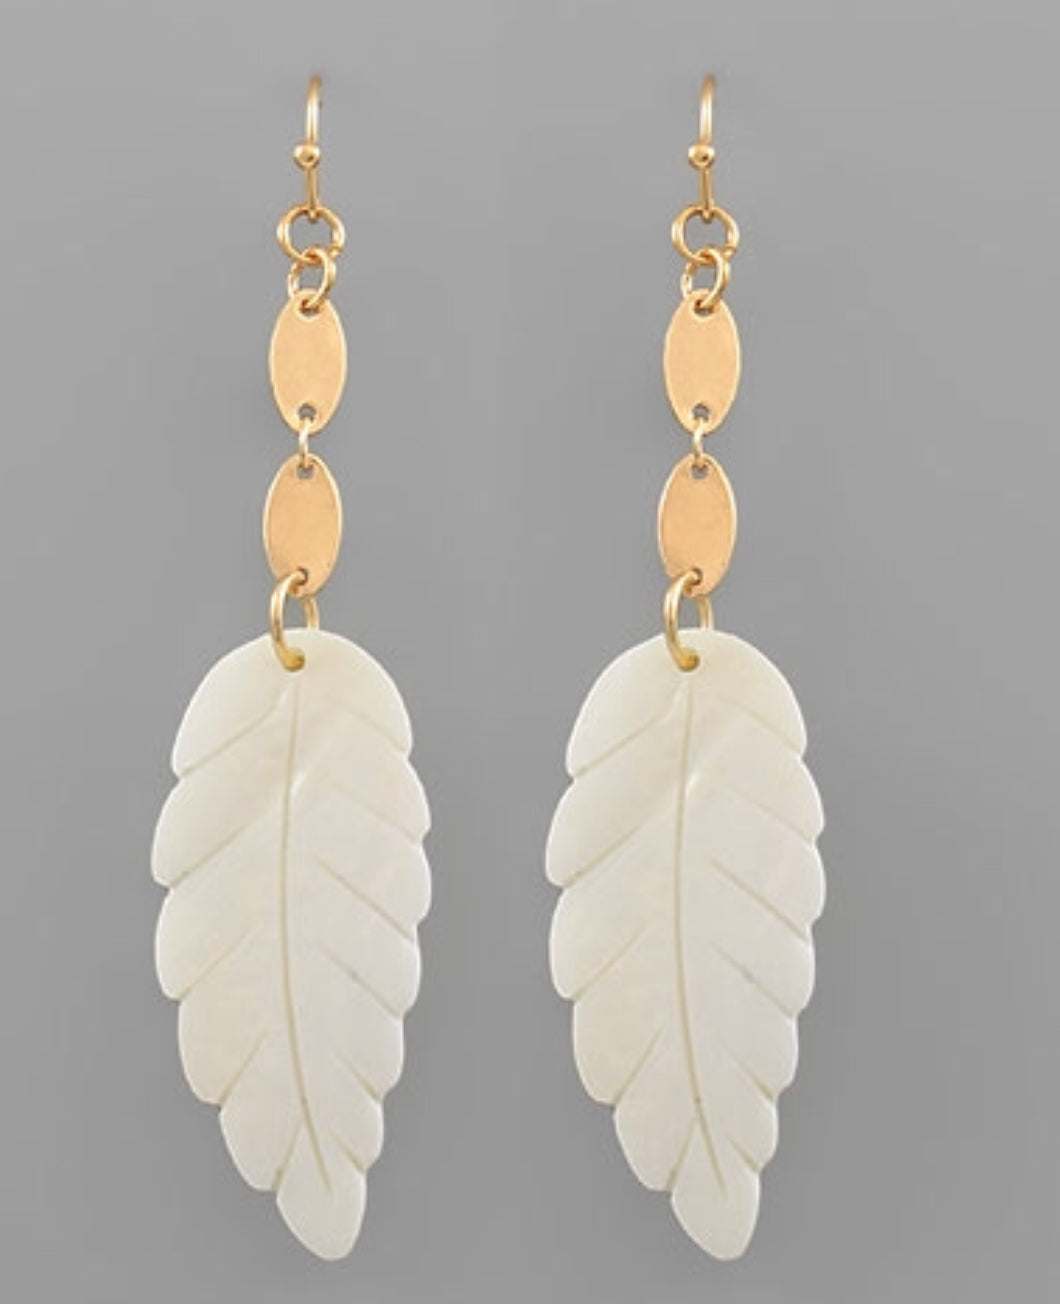 Bohemian Bliss Boutique,Leaf Acrylic Earrings,Earrings,Golden Stella